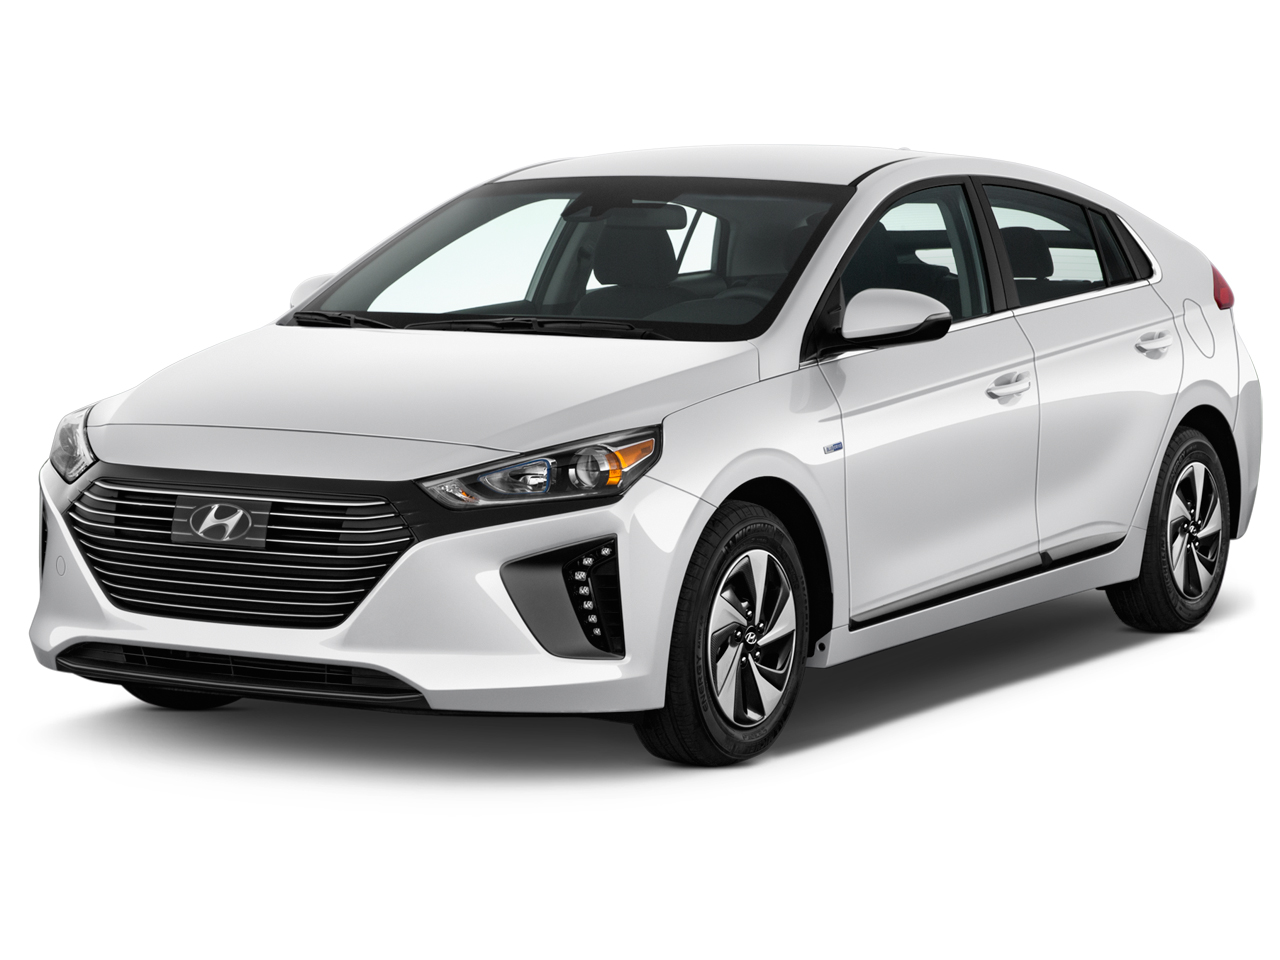 2018 hyundai ioniq hybrid review ratings specs prices and photos the car connection. Black Bedroom Furniture Sets. Home Design Ideas